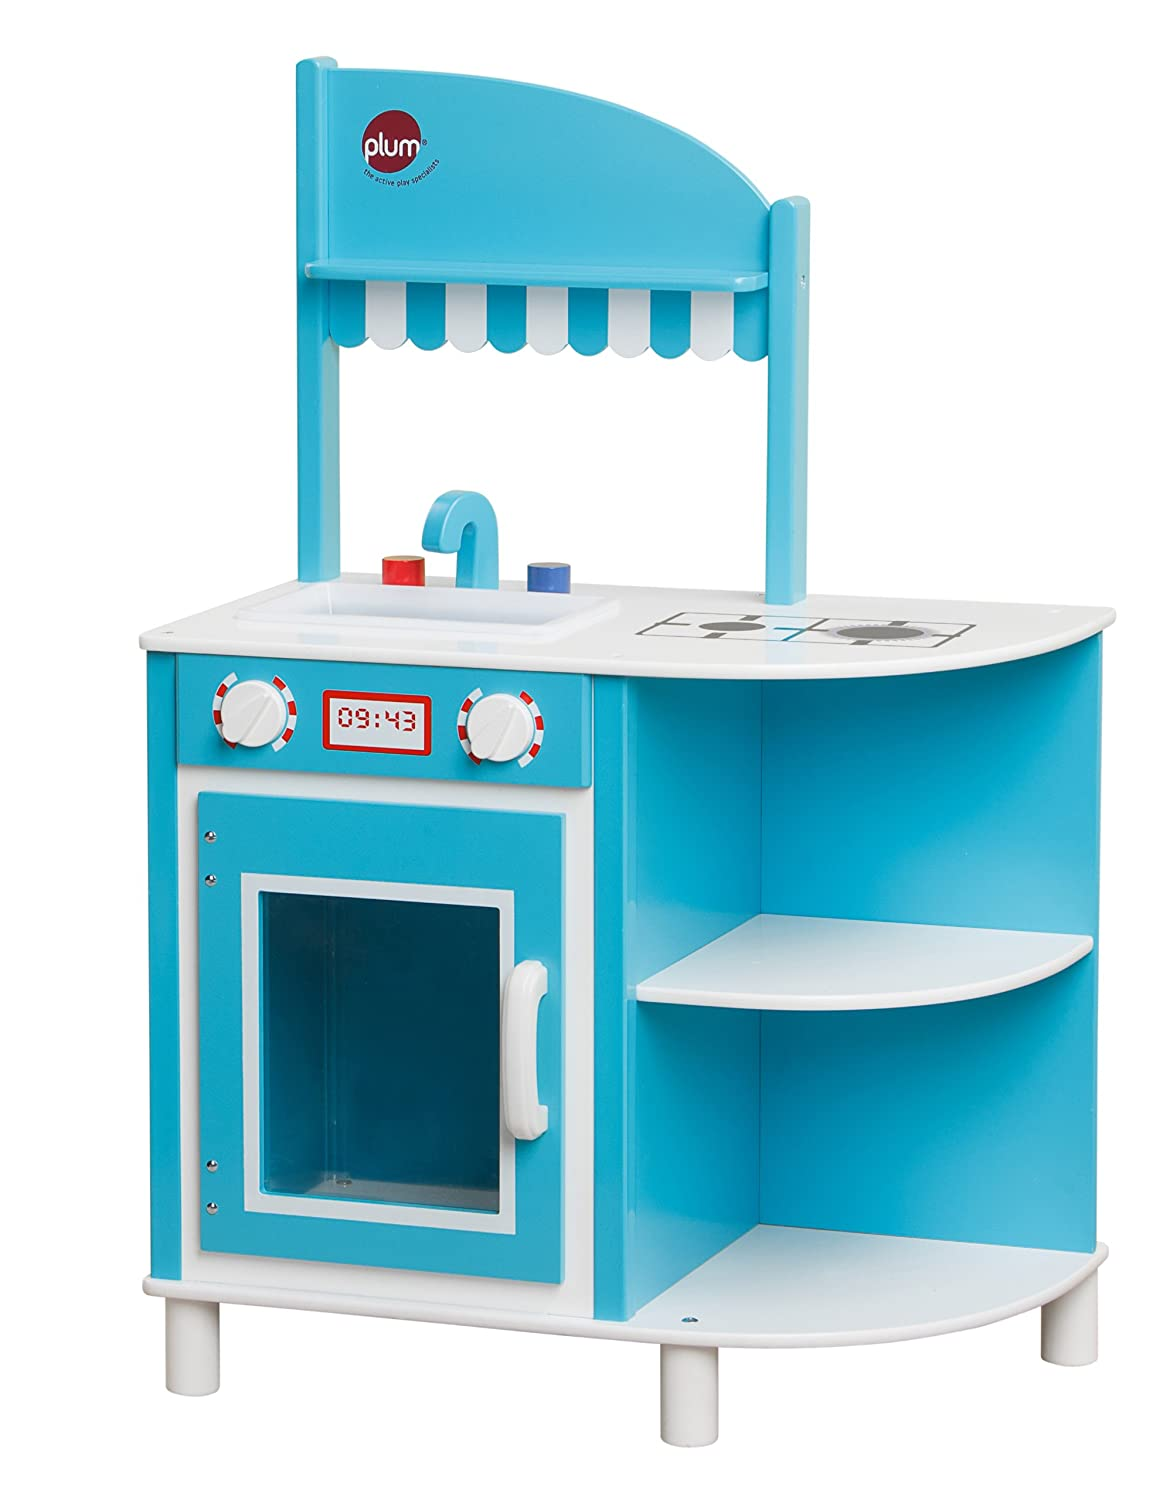 Plum® Hendon Wooden Role Play Kitchen with Accessories: Amazon.co.uk ...